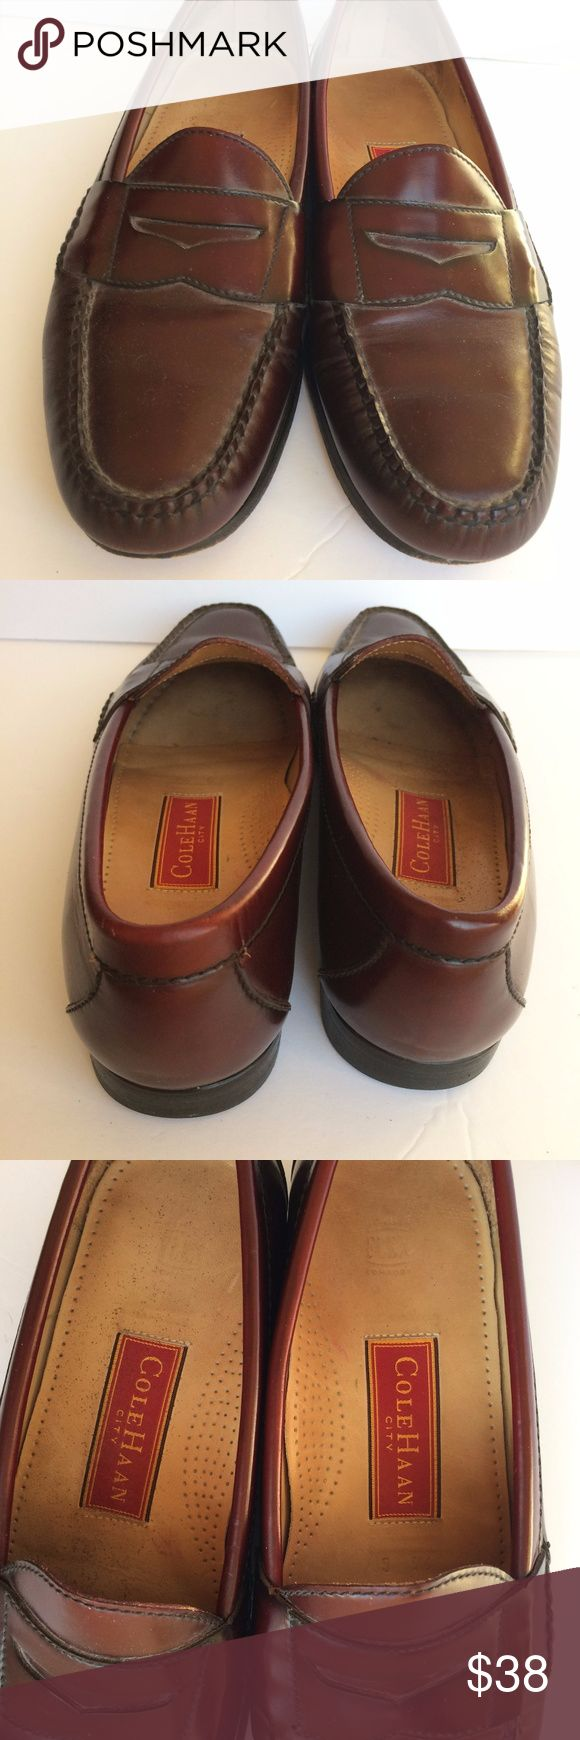 Cole Haan City Men's Leather Penny Loafers Brown Pre-owned in excellent condition. No rips, holes, stains, or other defects.  Size 9.5 penny loafers. Genuine leather, minor wear on sole. Cole Haan Shoes Loafers & Slip-Ons